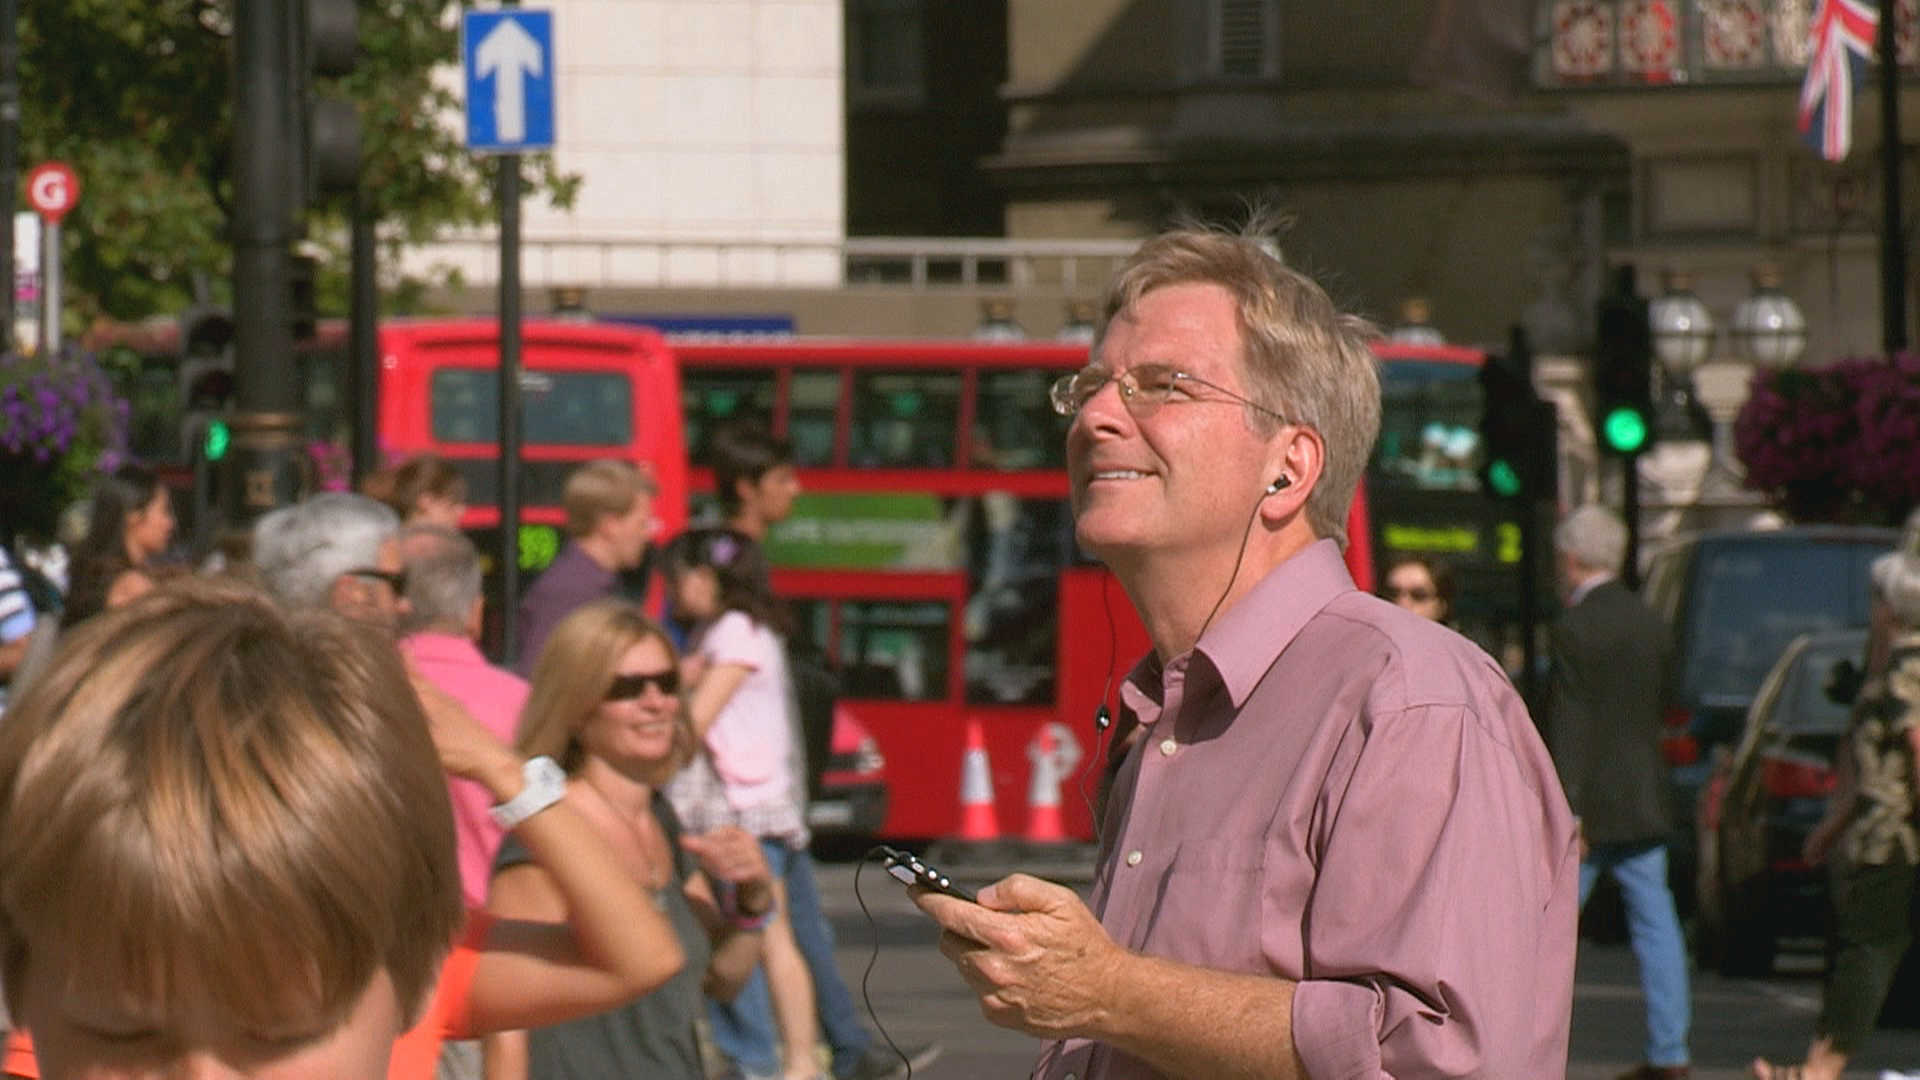 Rick Steves uses his audio walking tour of London